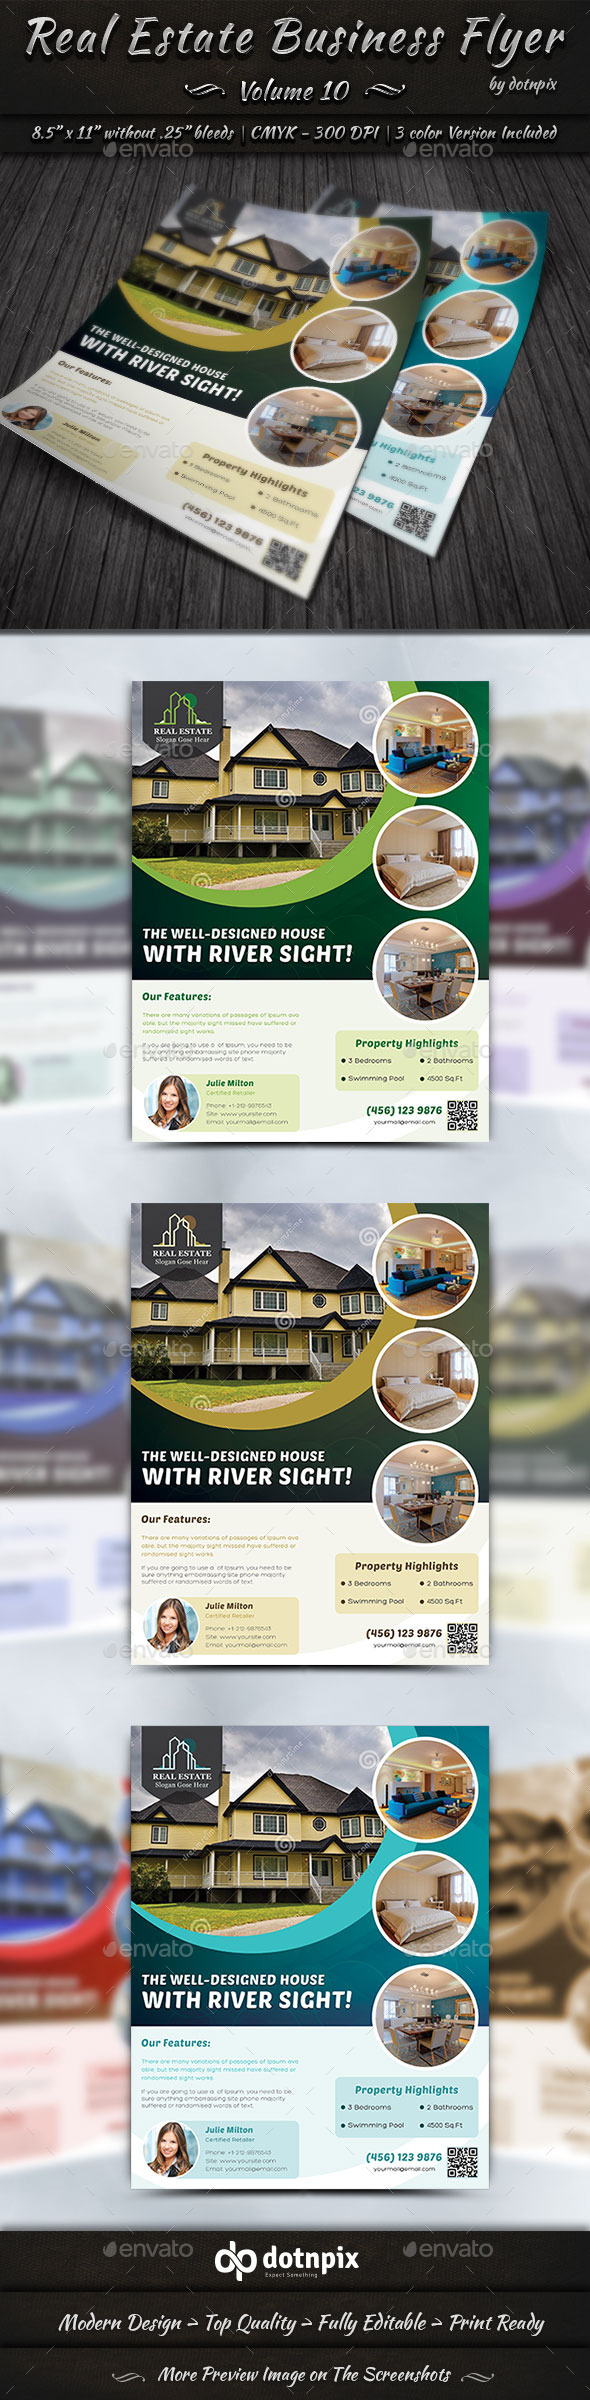 Real Estate Business Flyer | Volume 10 - Corporate Flyers